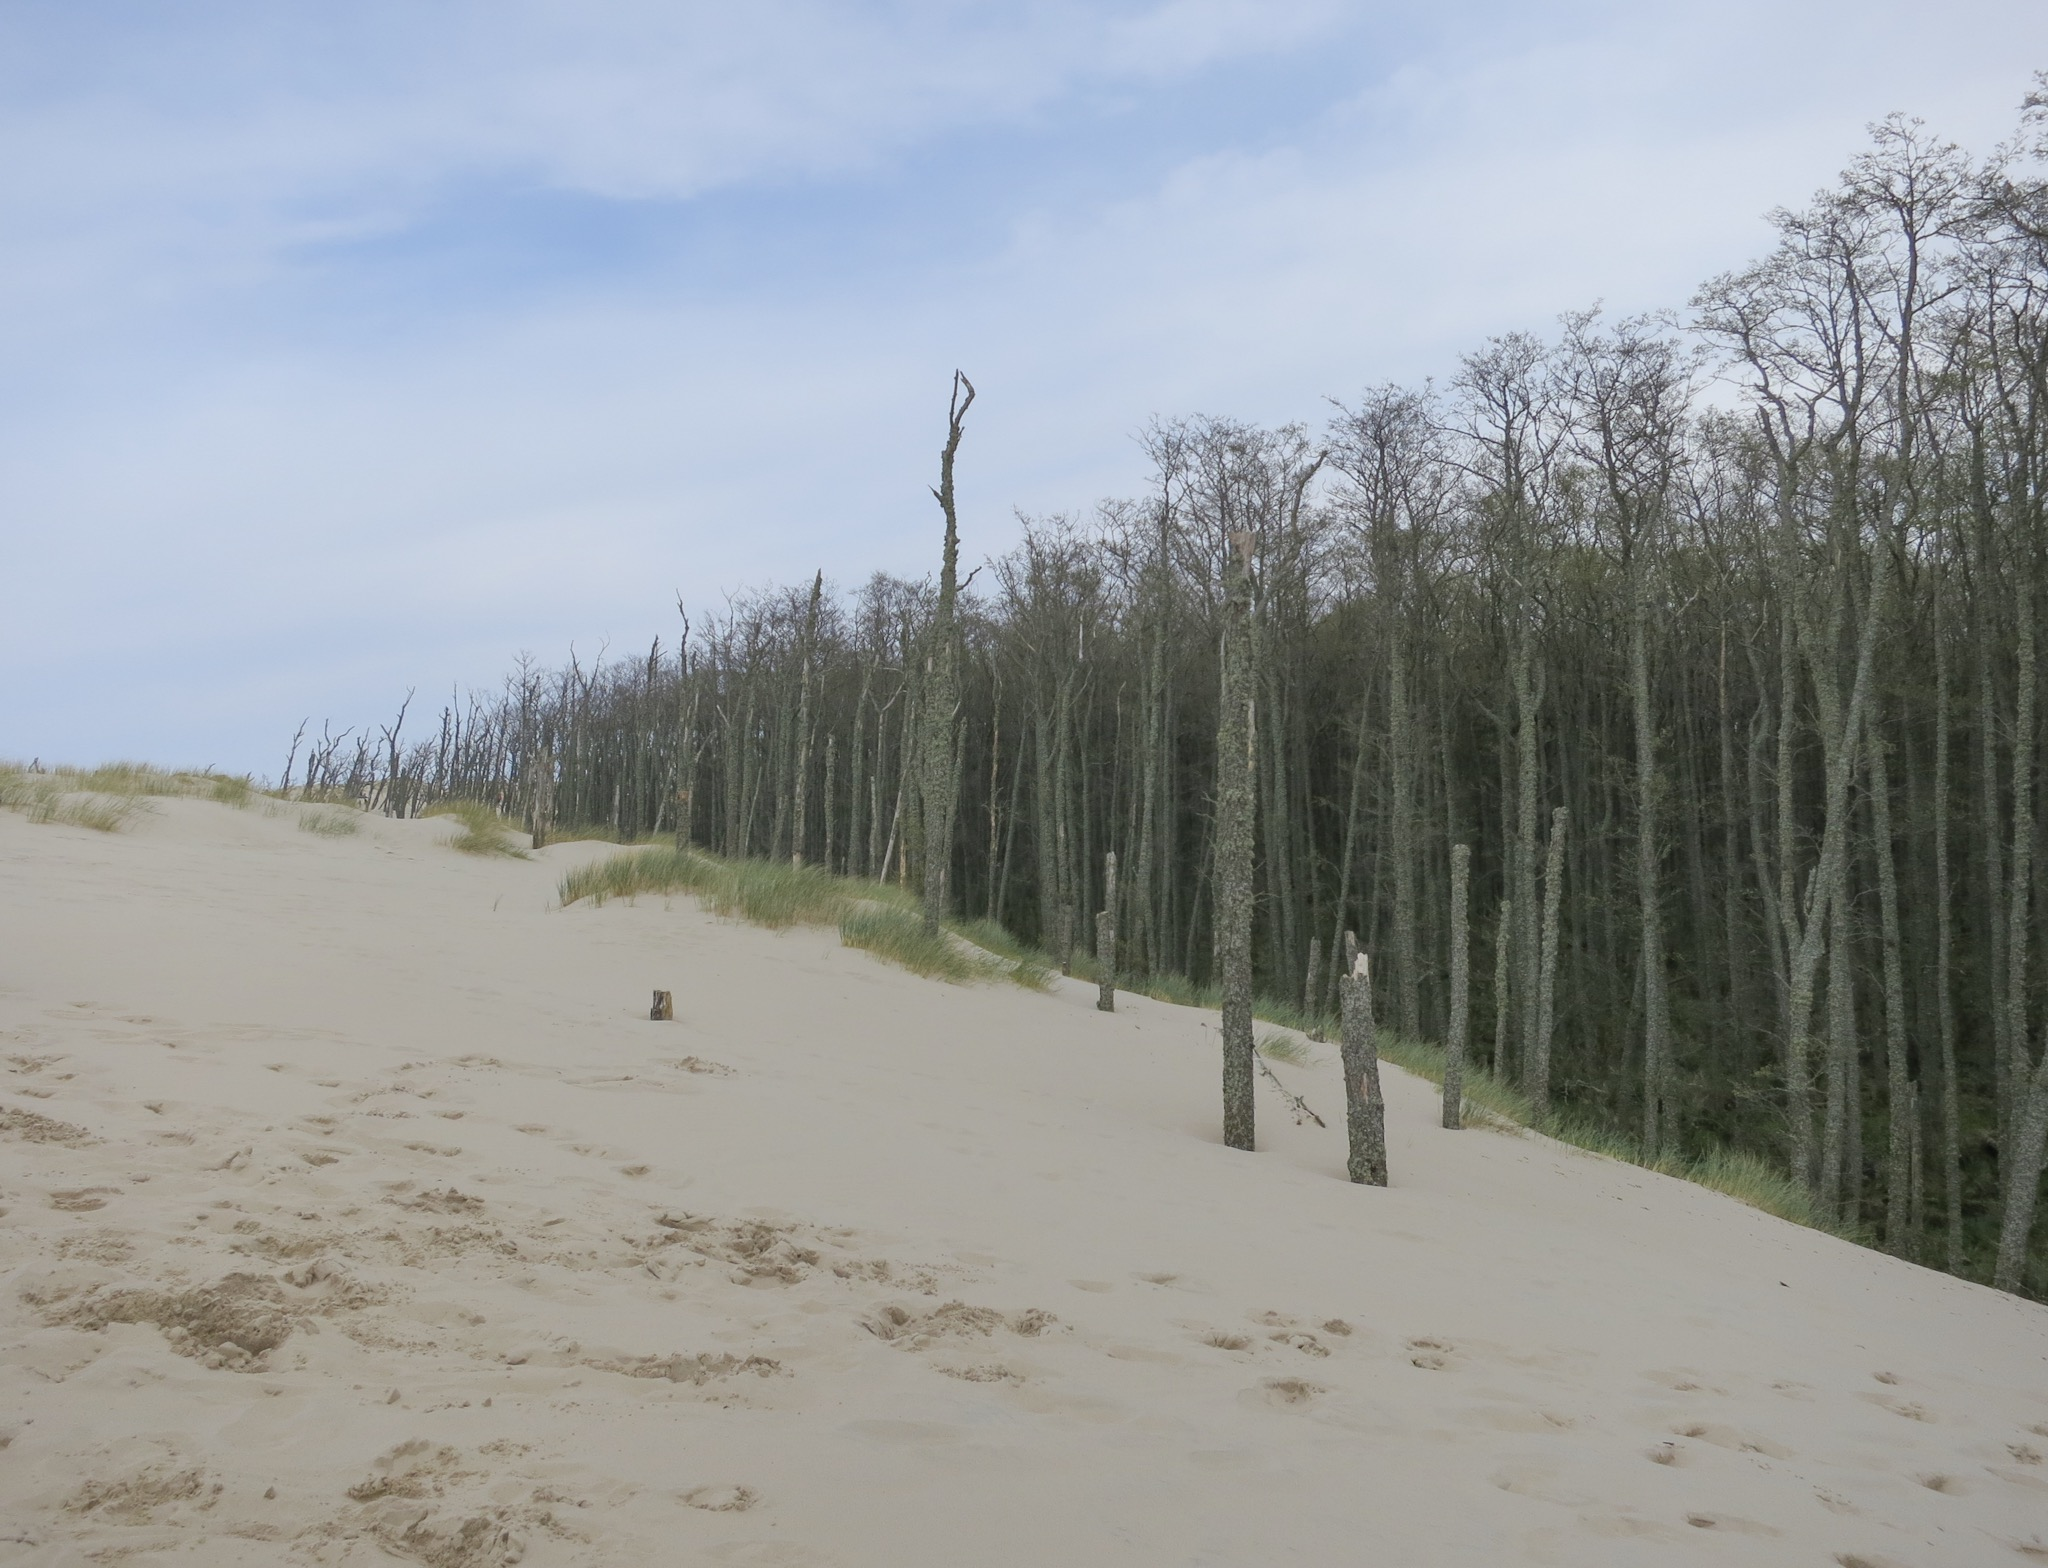 Alder forest being slowly consumed by the Łackca Sand Dune In Słowiński National Park